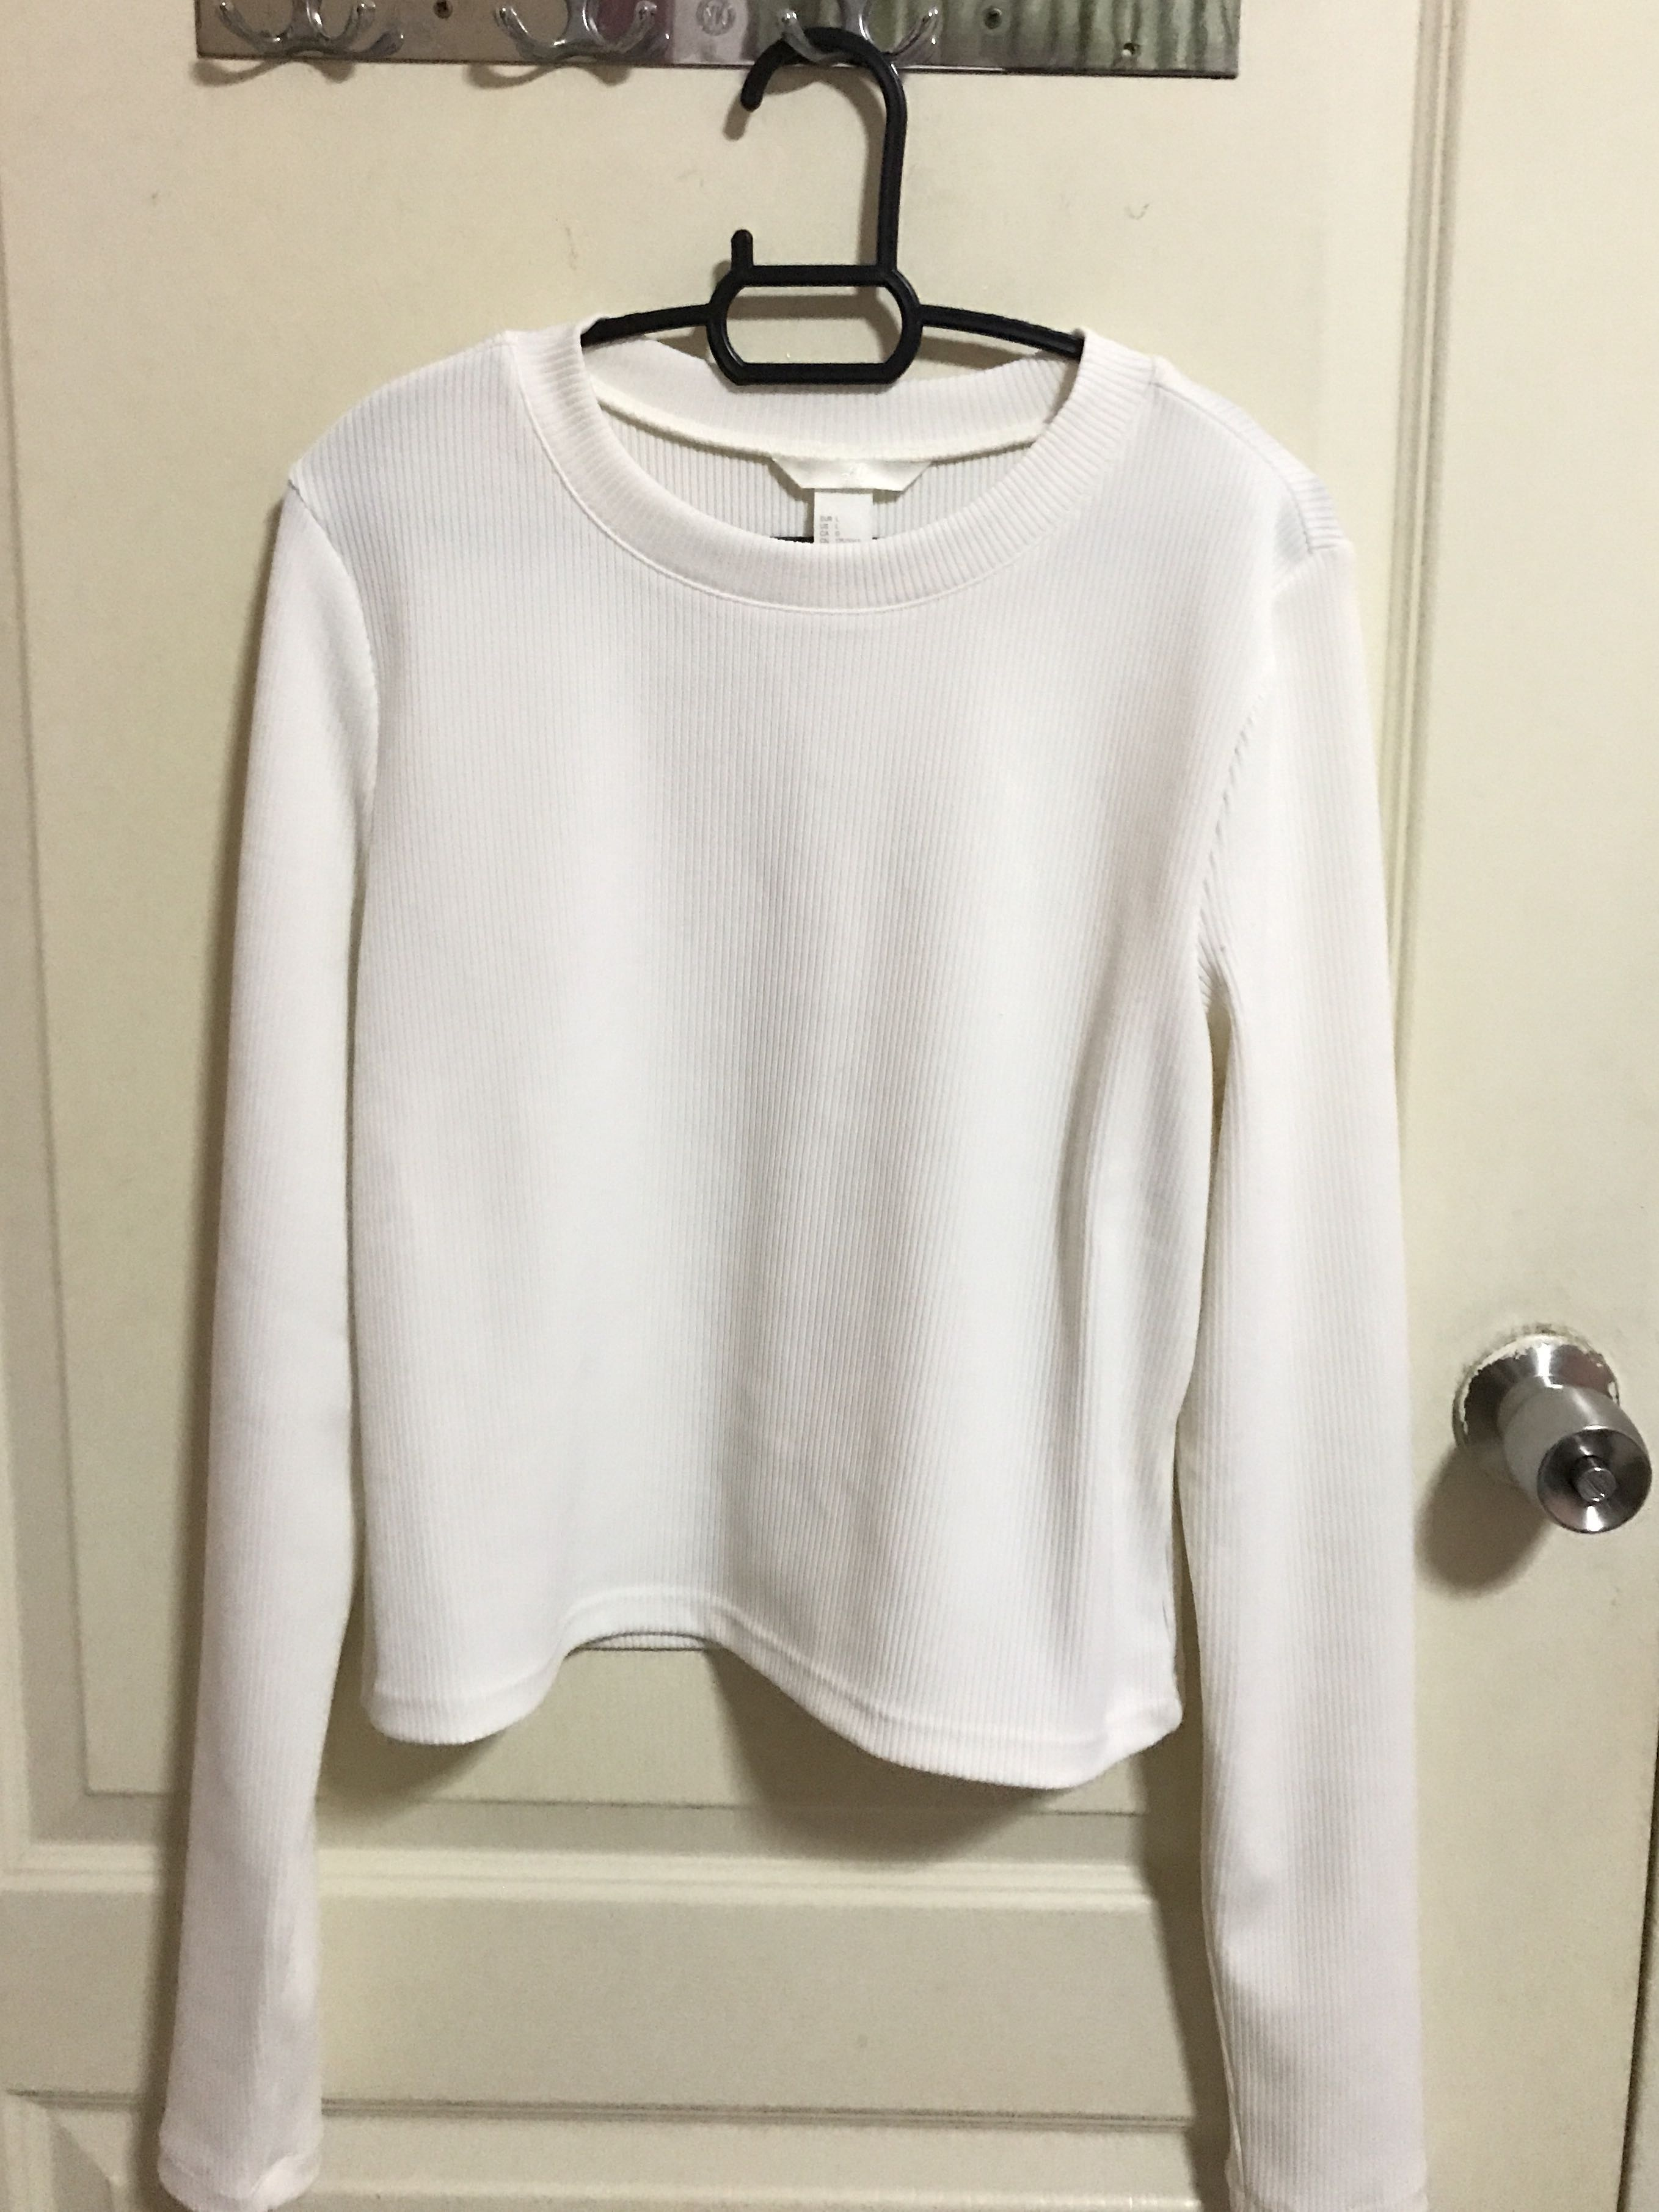 5f115b6f339bd2 H&M White Long Sleeve Top, Women's Fashion, Clothes, Tops on Carousell